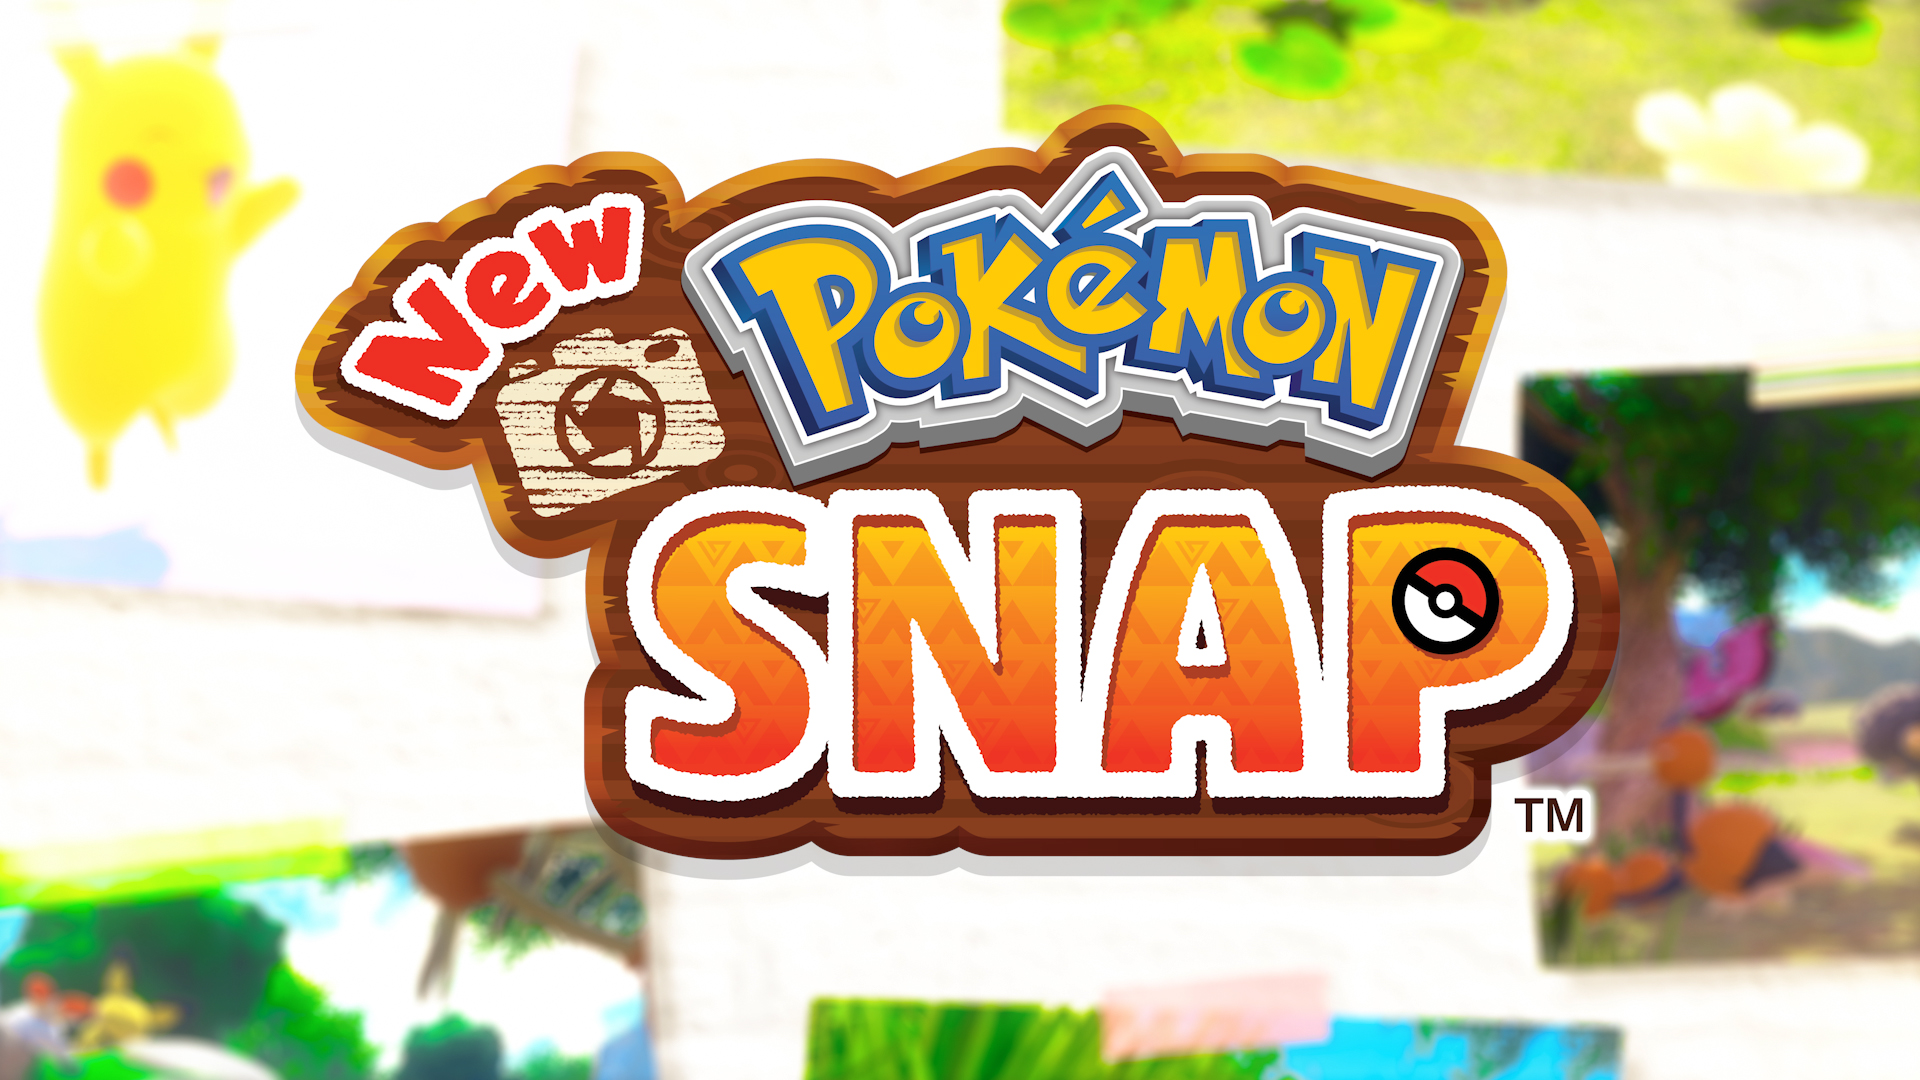 New Pokémon Snap Website